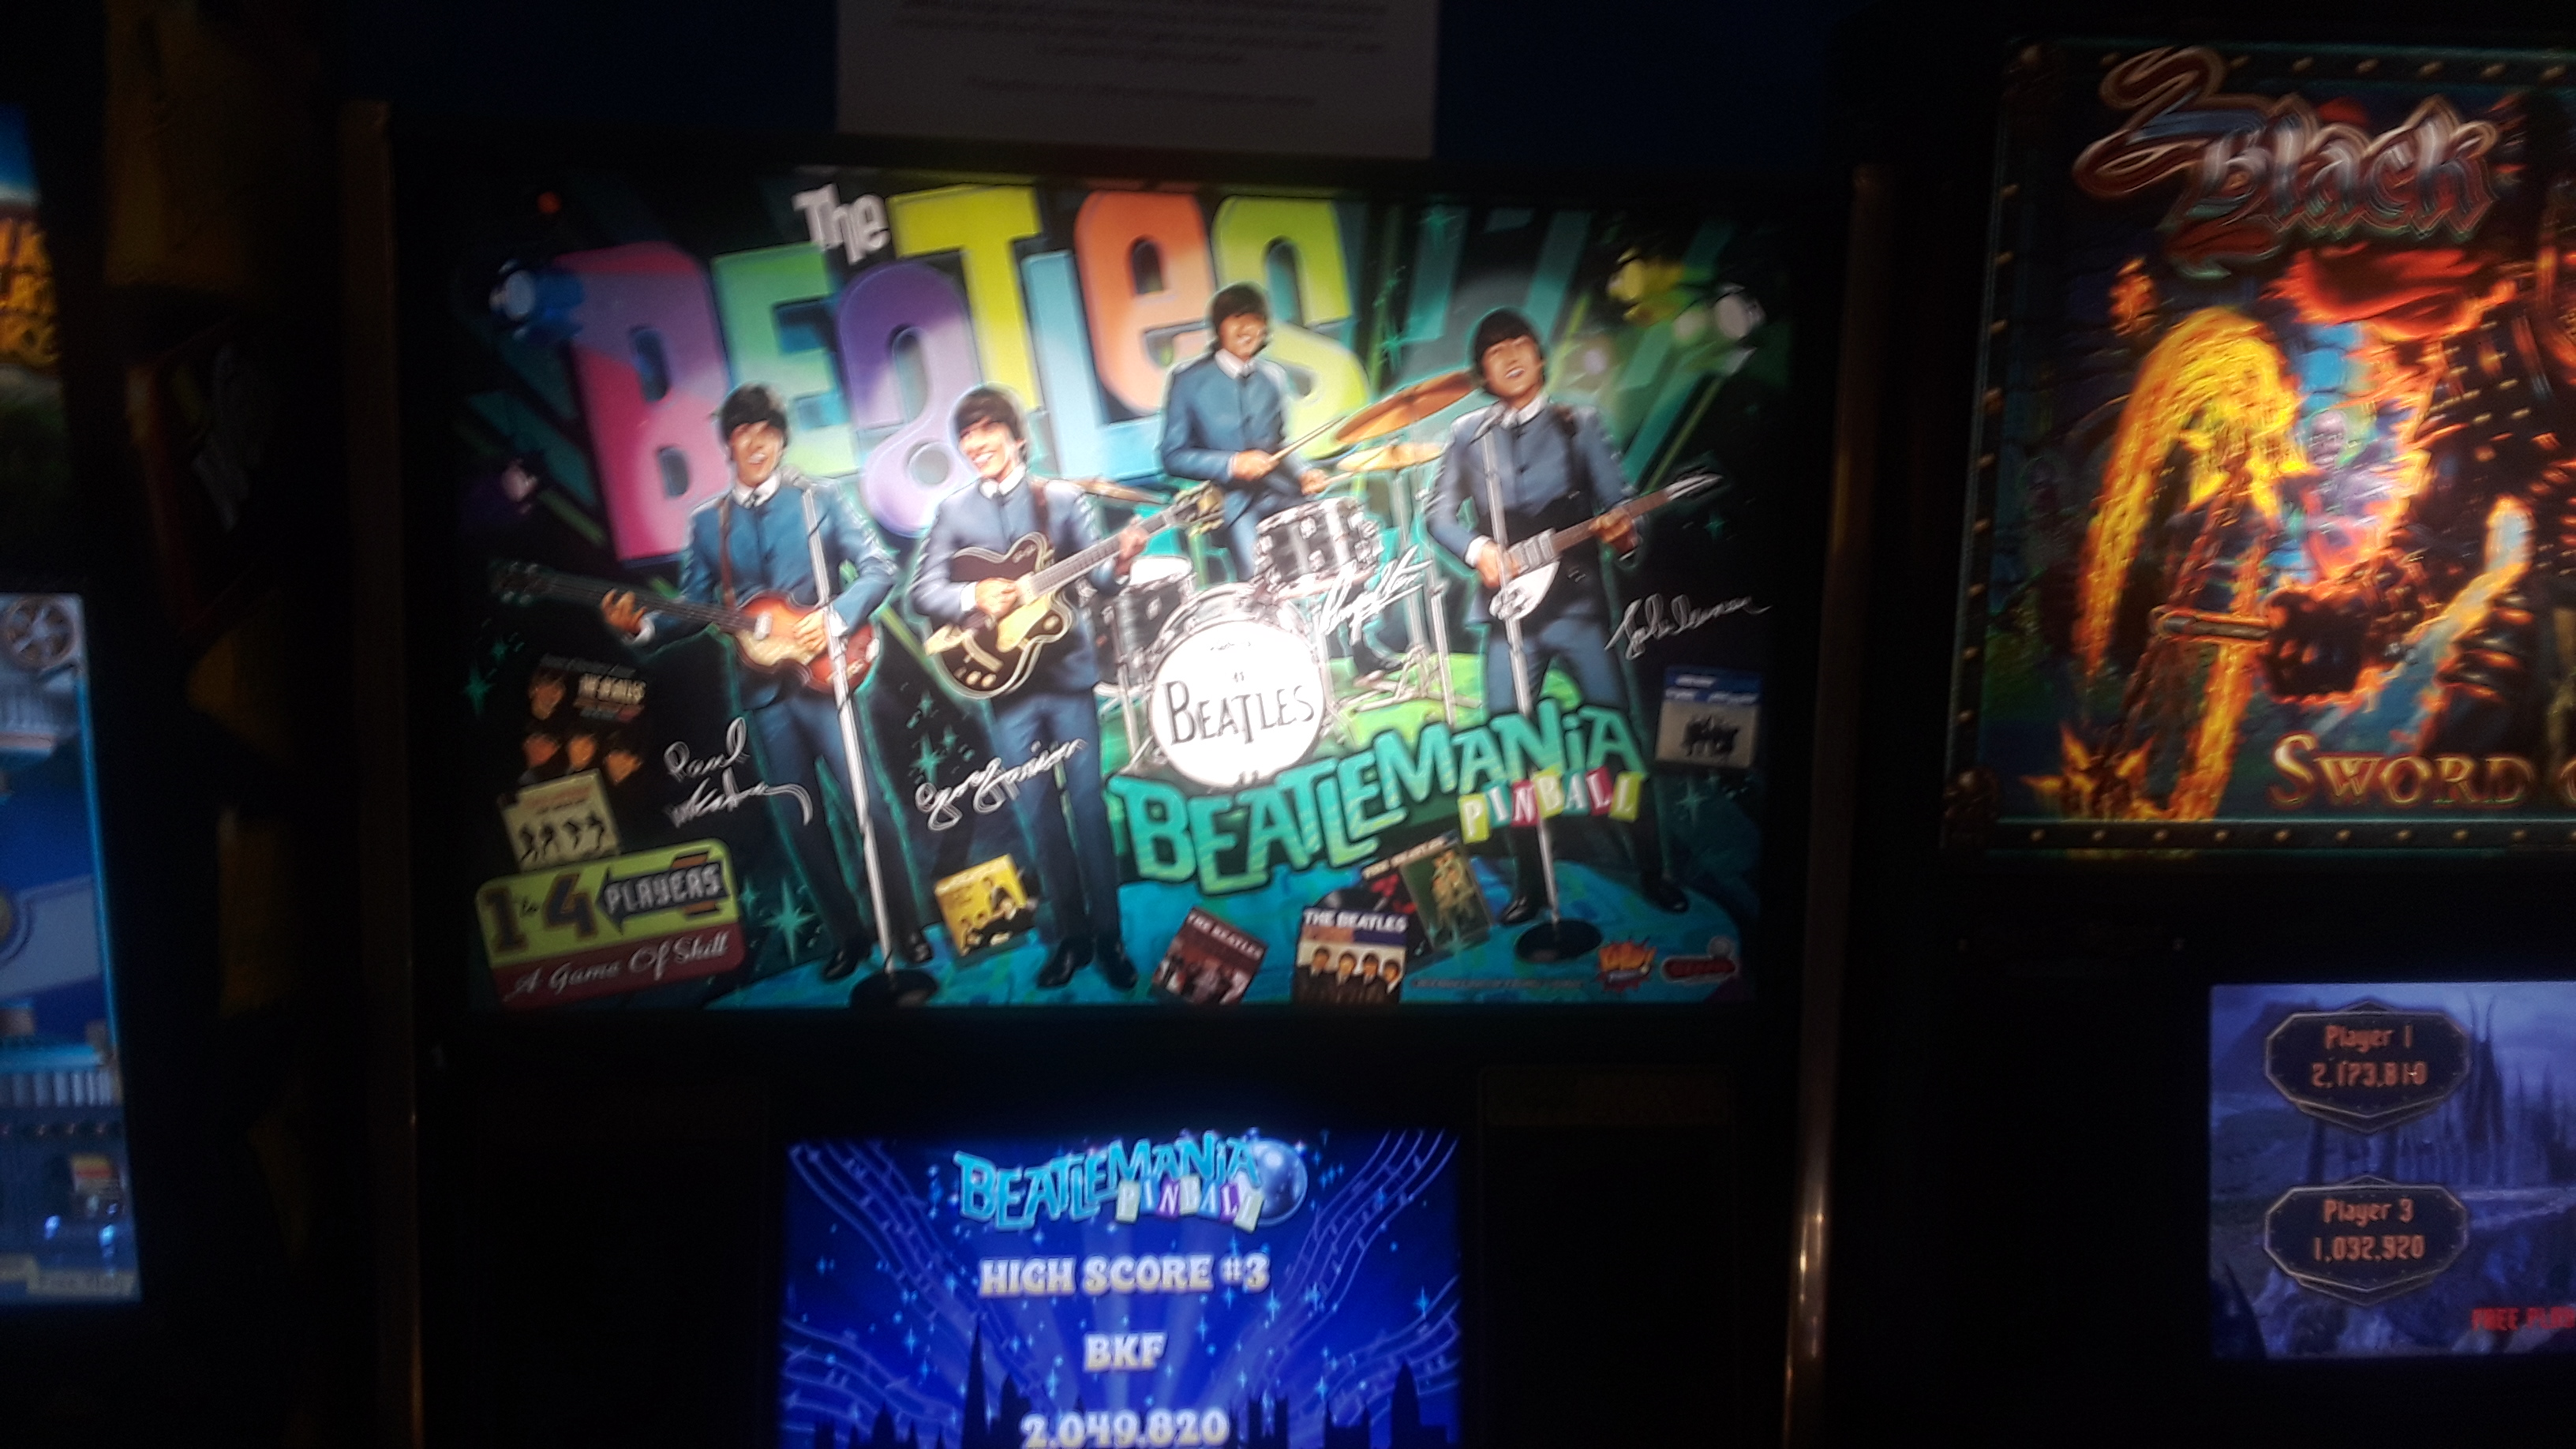 The Beatles [Diamond Ed.] 369,540 points